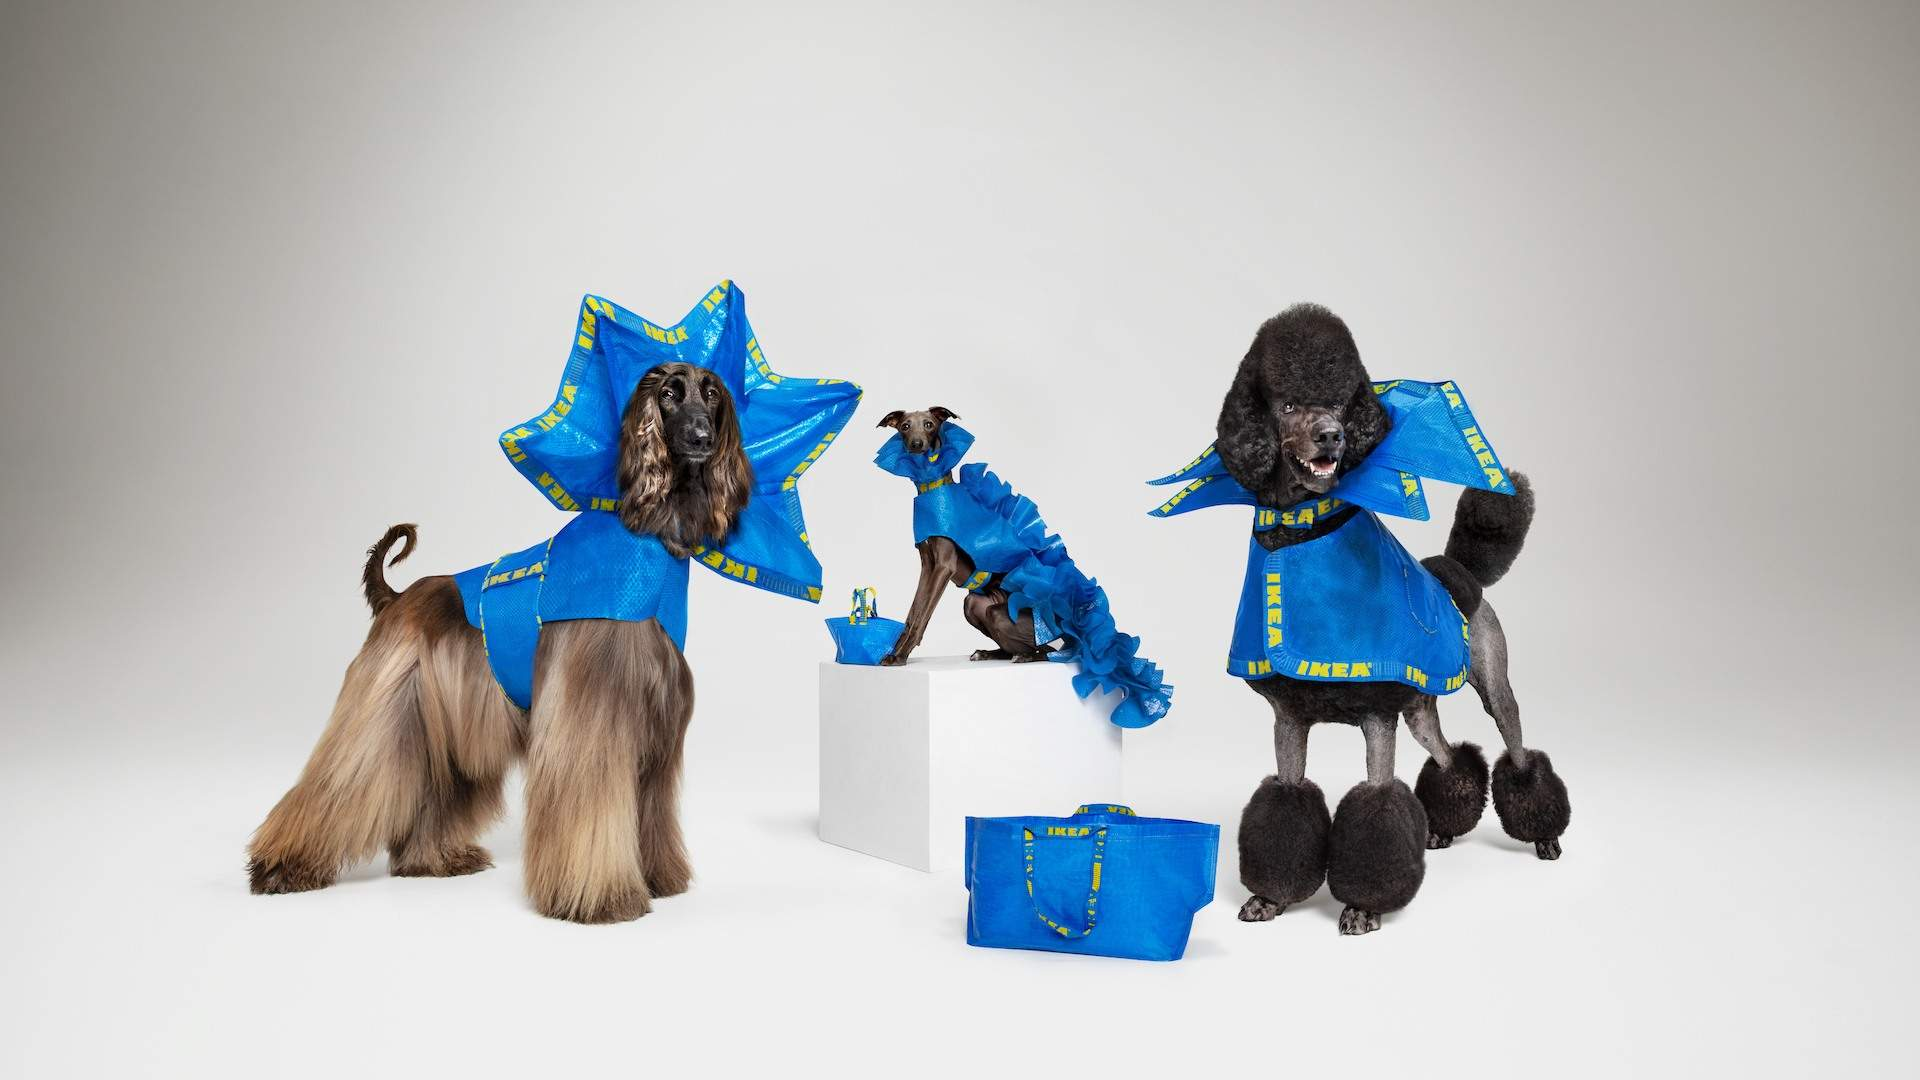 IKEA Wants You to Turn Its Iconic Blue Shopping Bags Into Outfits for Your Dog